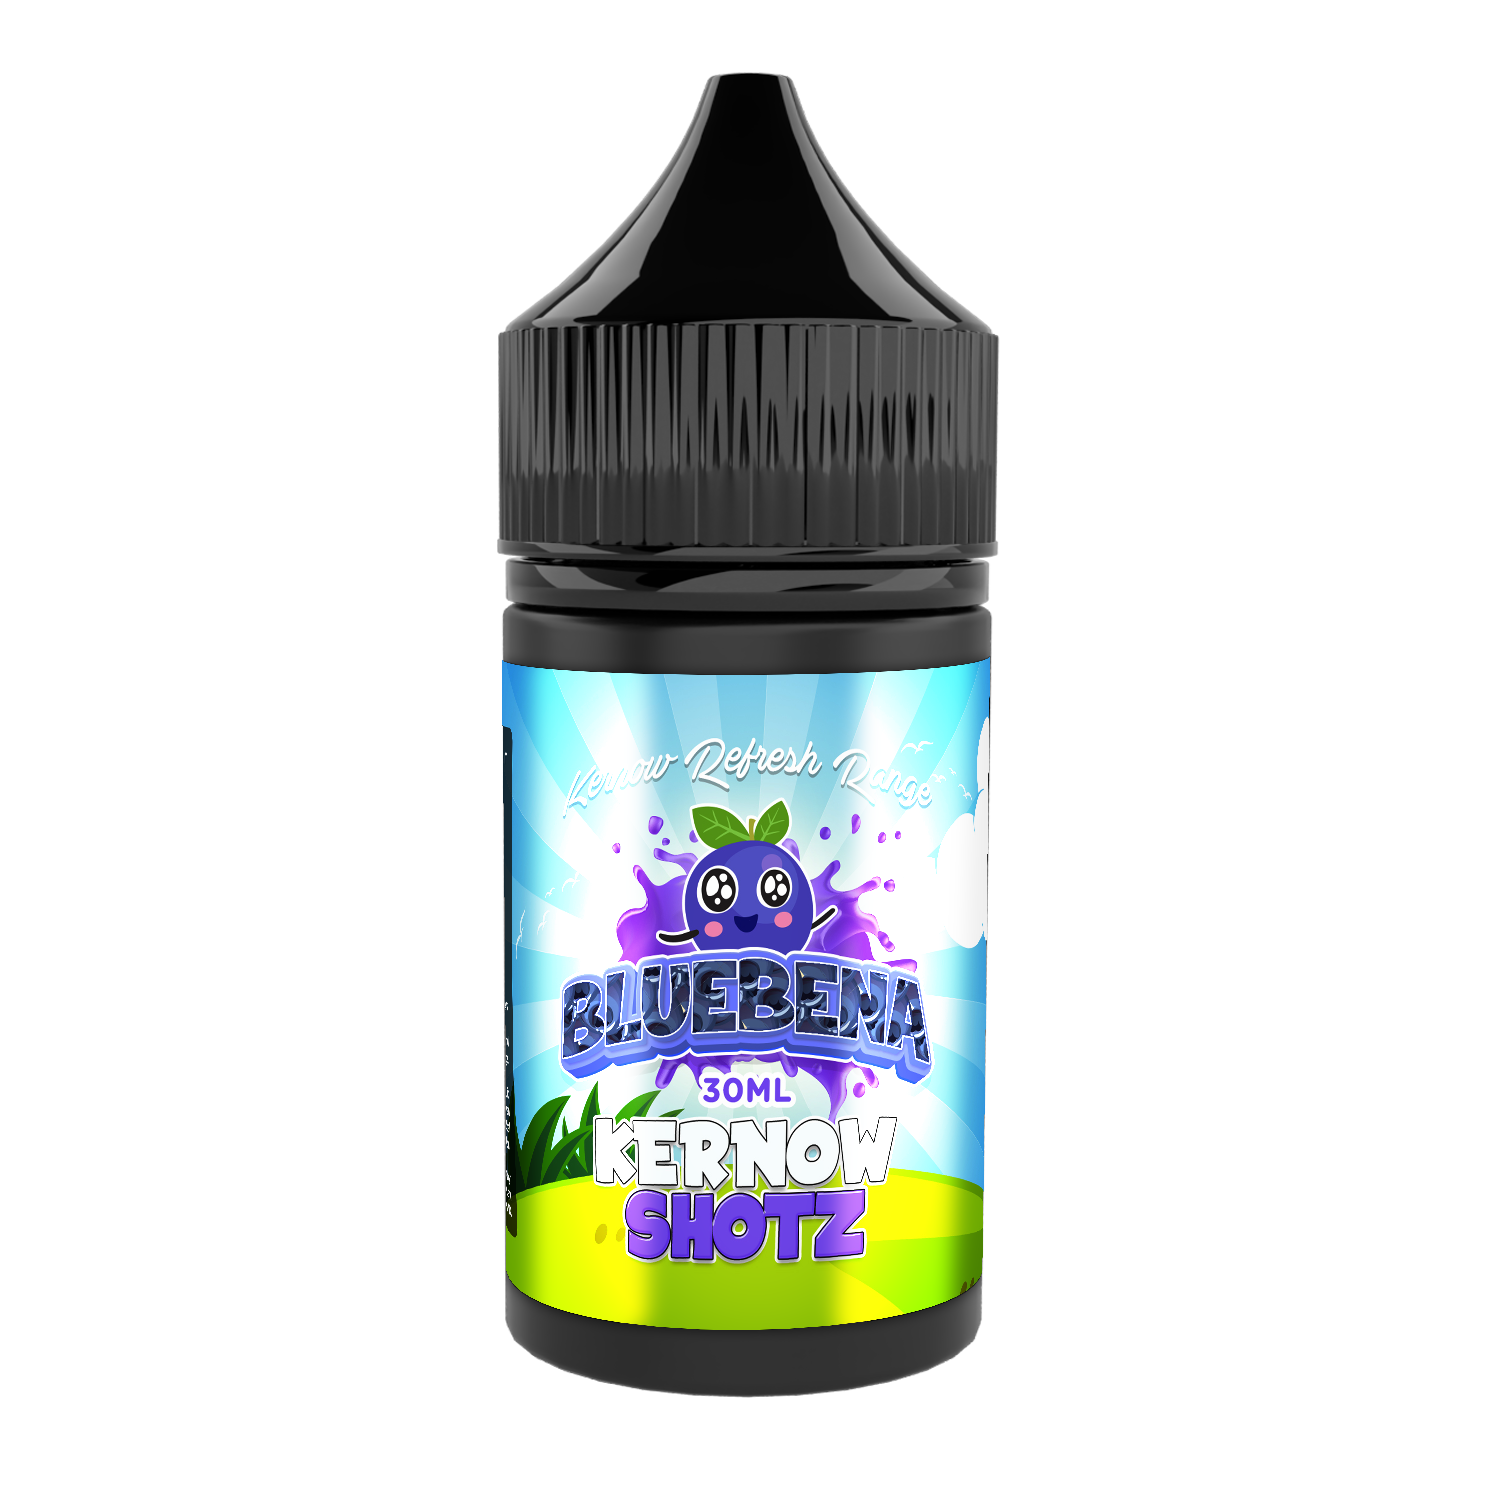 Bluebena Flavour Concentrate by Kernow Flavours